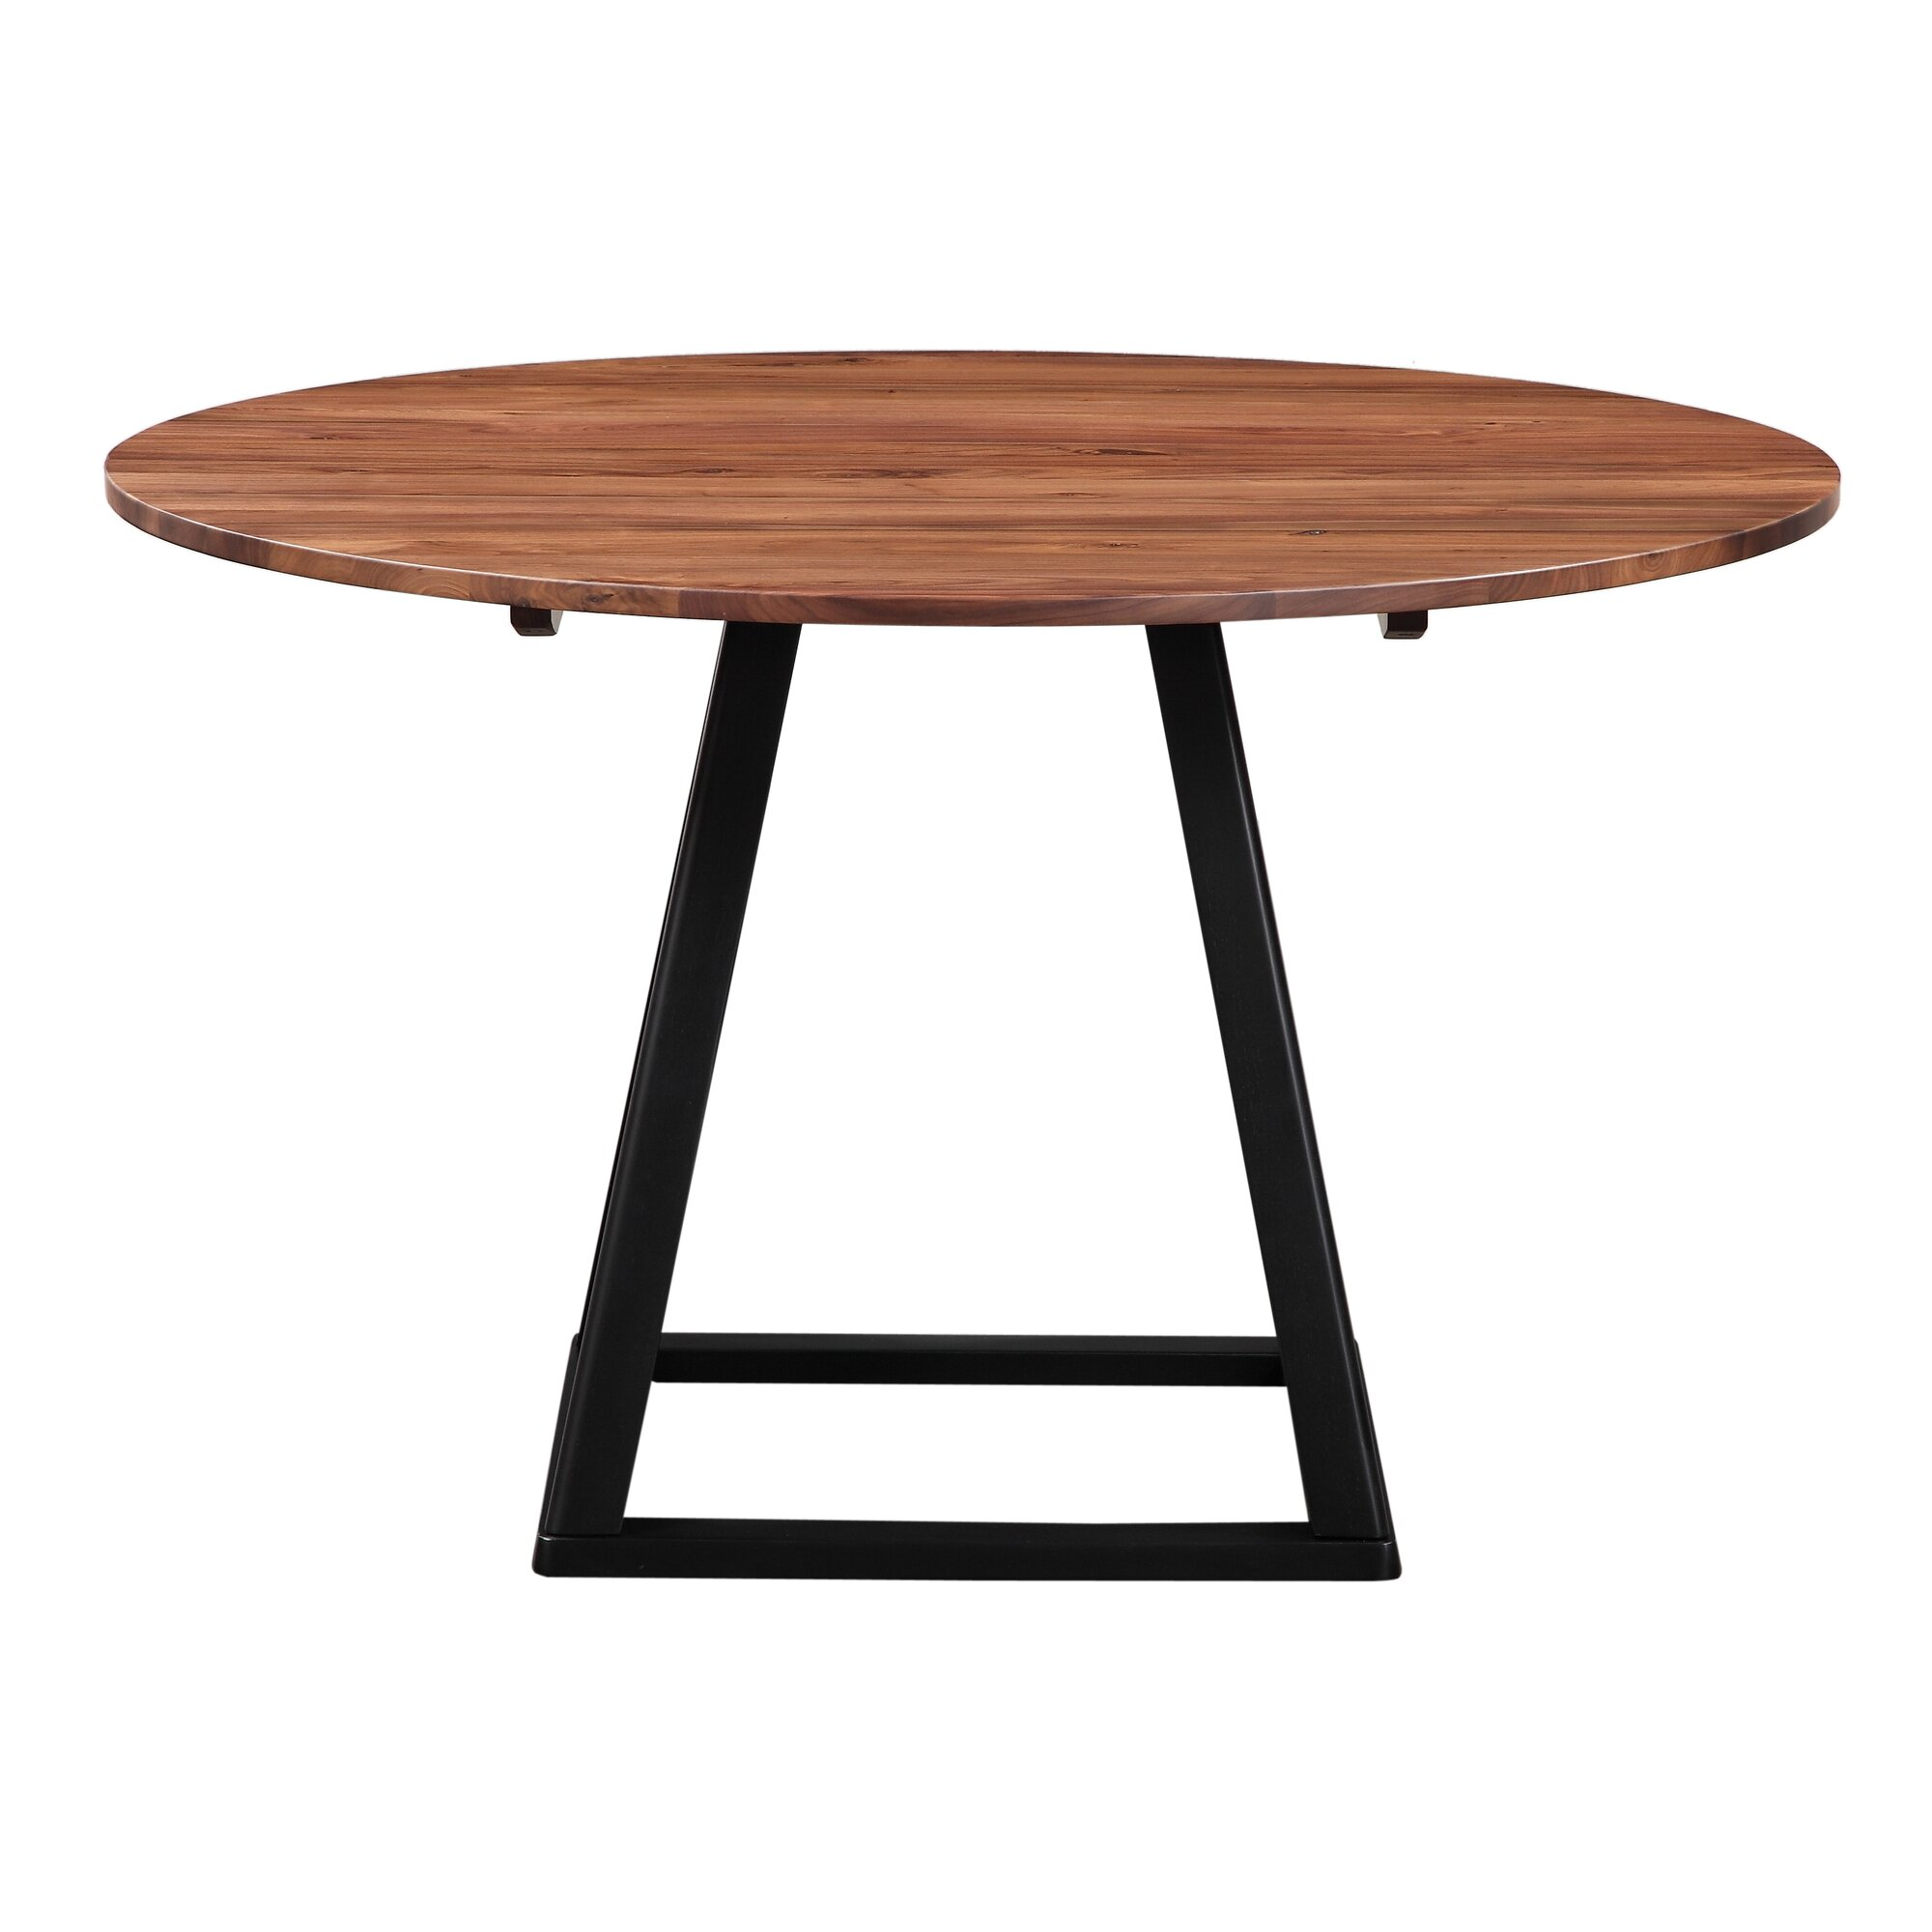 Fitzgerald round dining table allmodern for Round table 85 ortenau